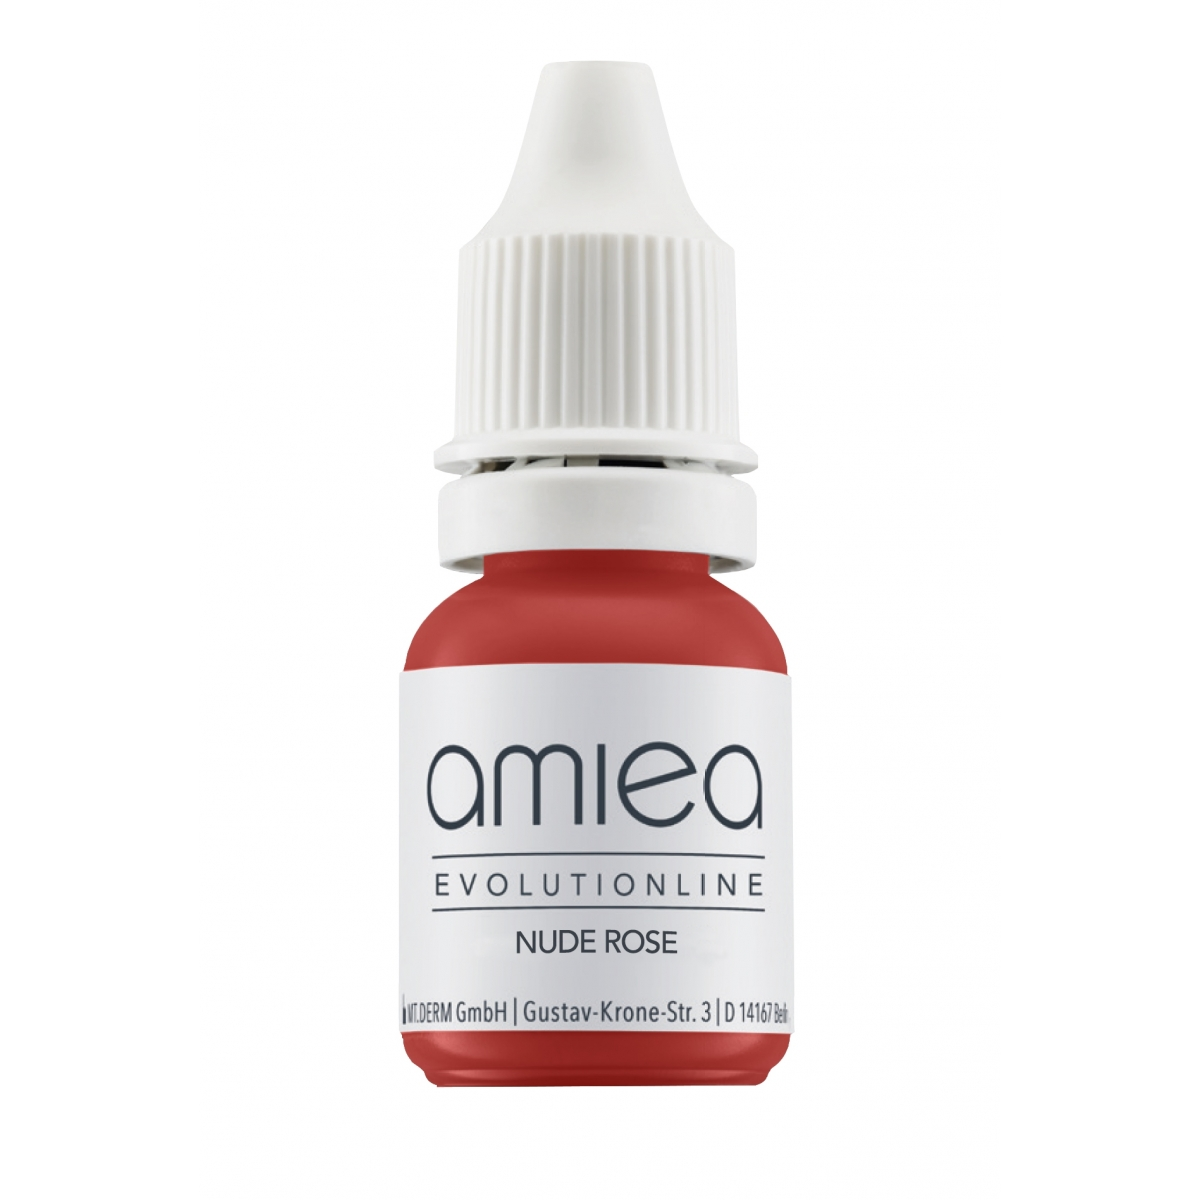 PIGMENTS AMIEA EVOLUTIONLINE NUDE ROSE, 5 ml